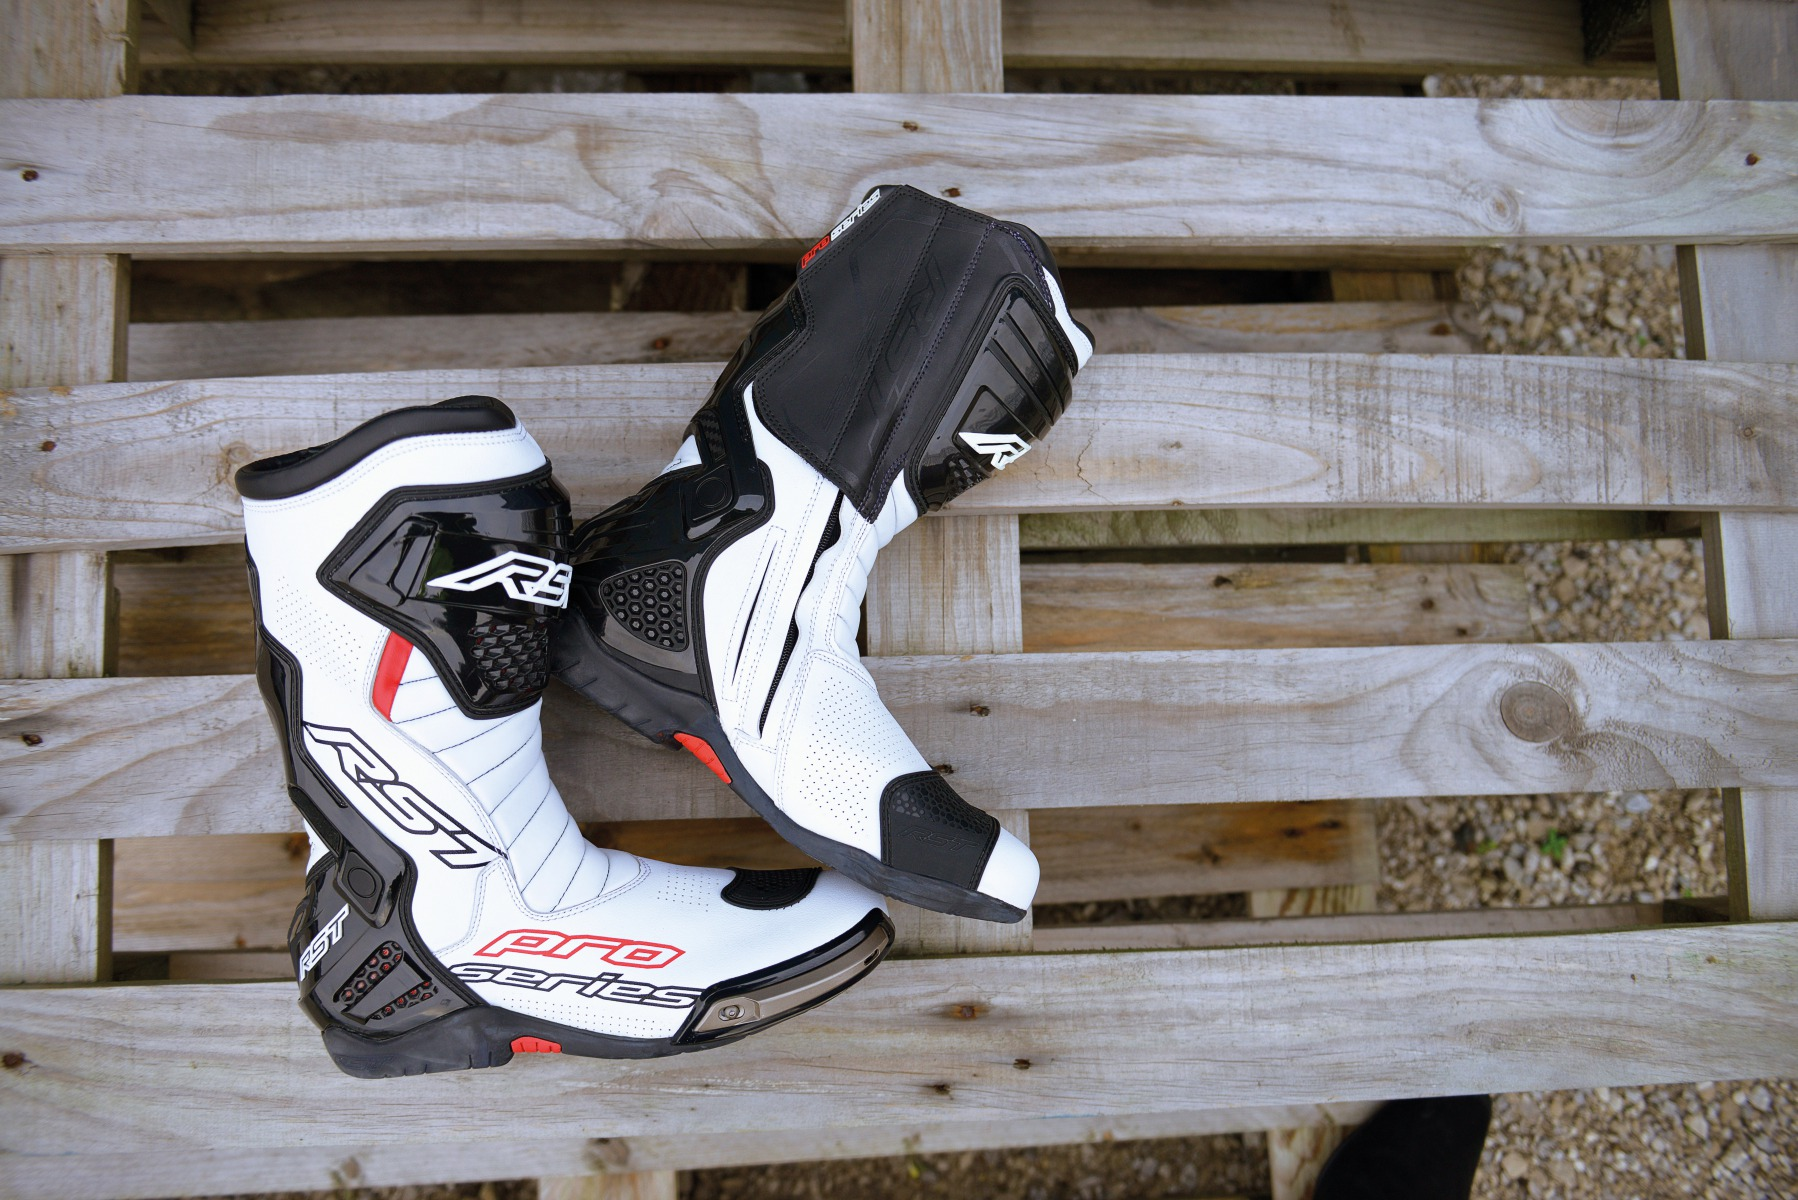 101503-rst-pro-series-race-boot-white-lifestyle-01